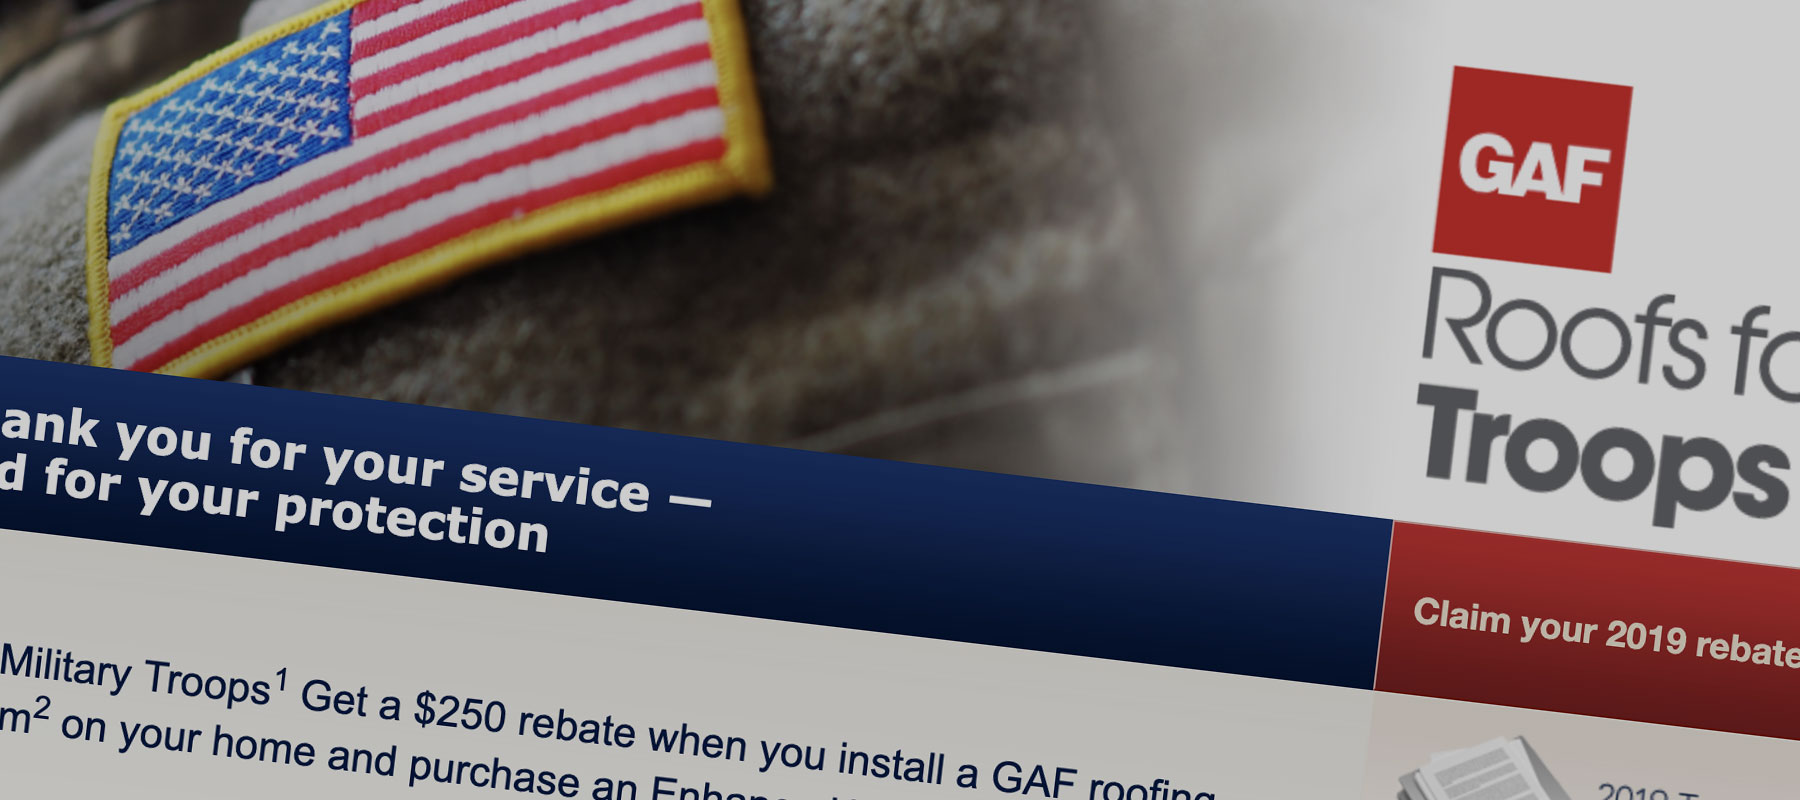 GAF Roofs for Troops Rebate